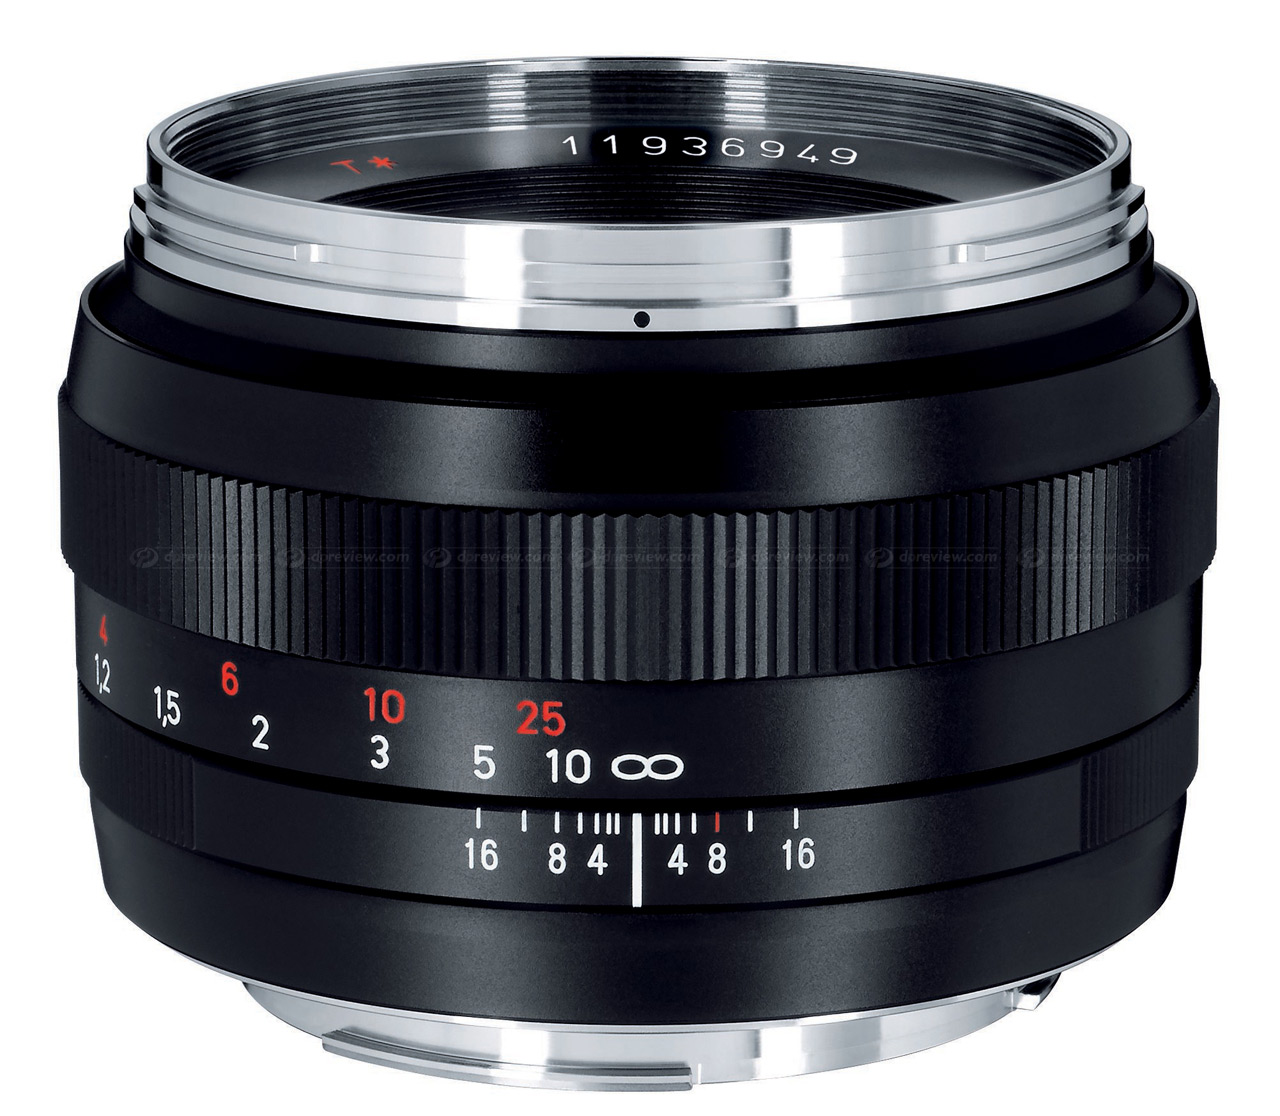 Carl Zeiss Lens >> Carl Zeiss Lenses For Canon Slrs Digital Photography Review